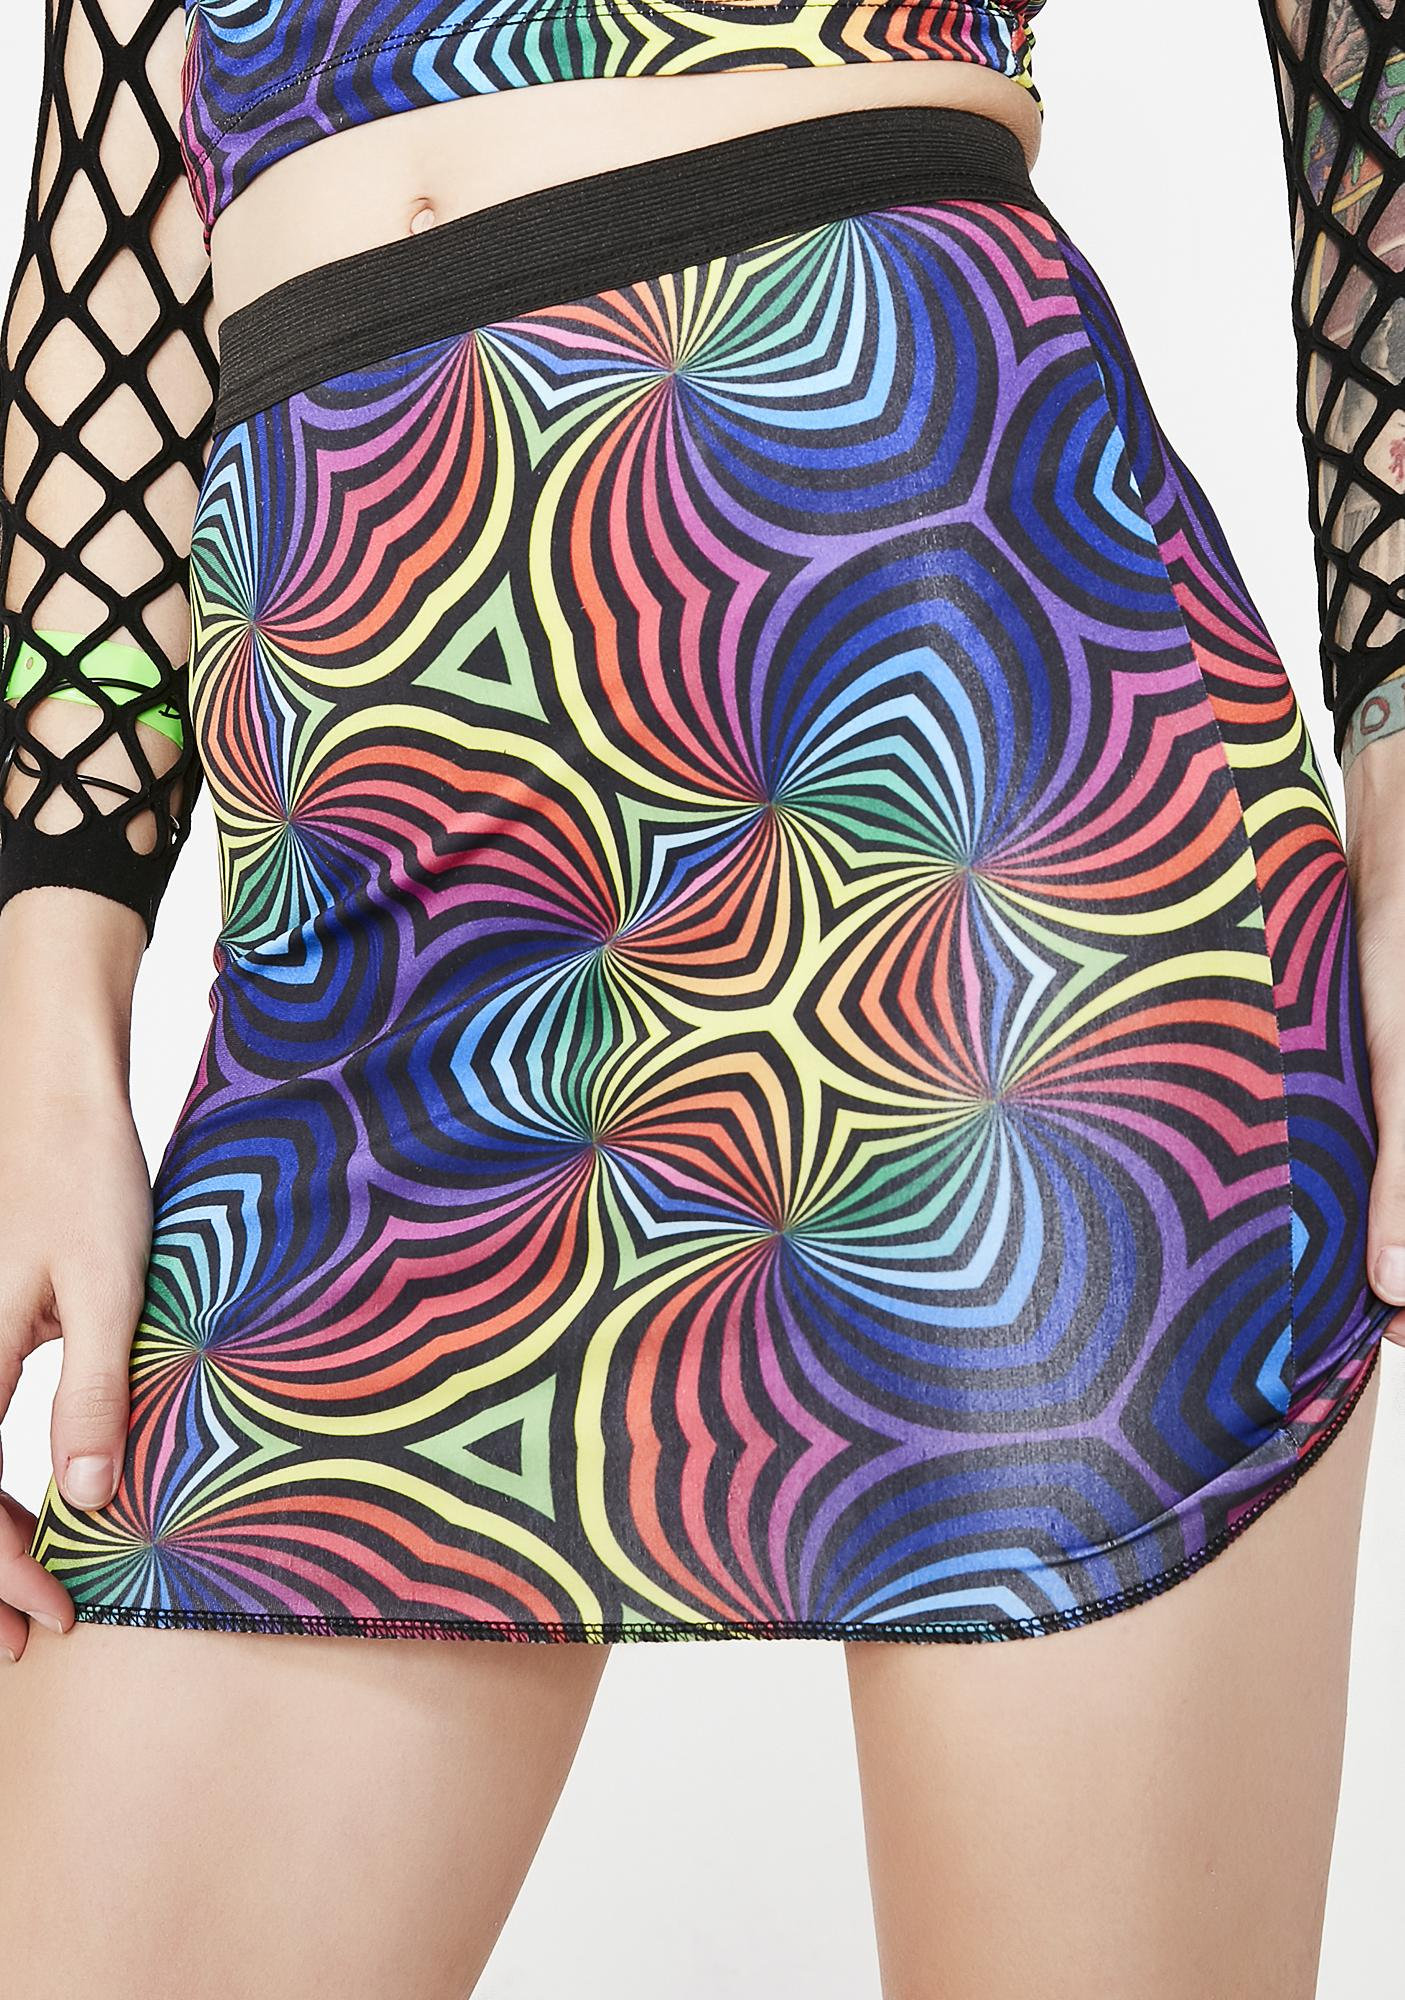 Current Mood Optical Delusion Rainbow Skirt